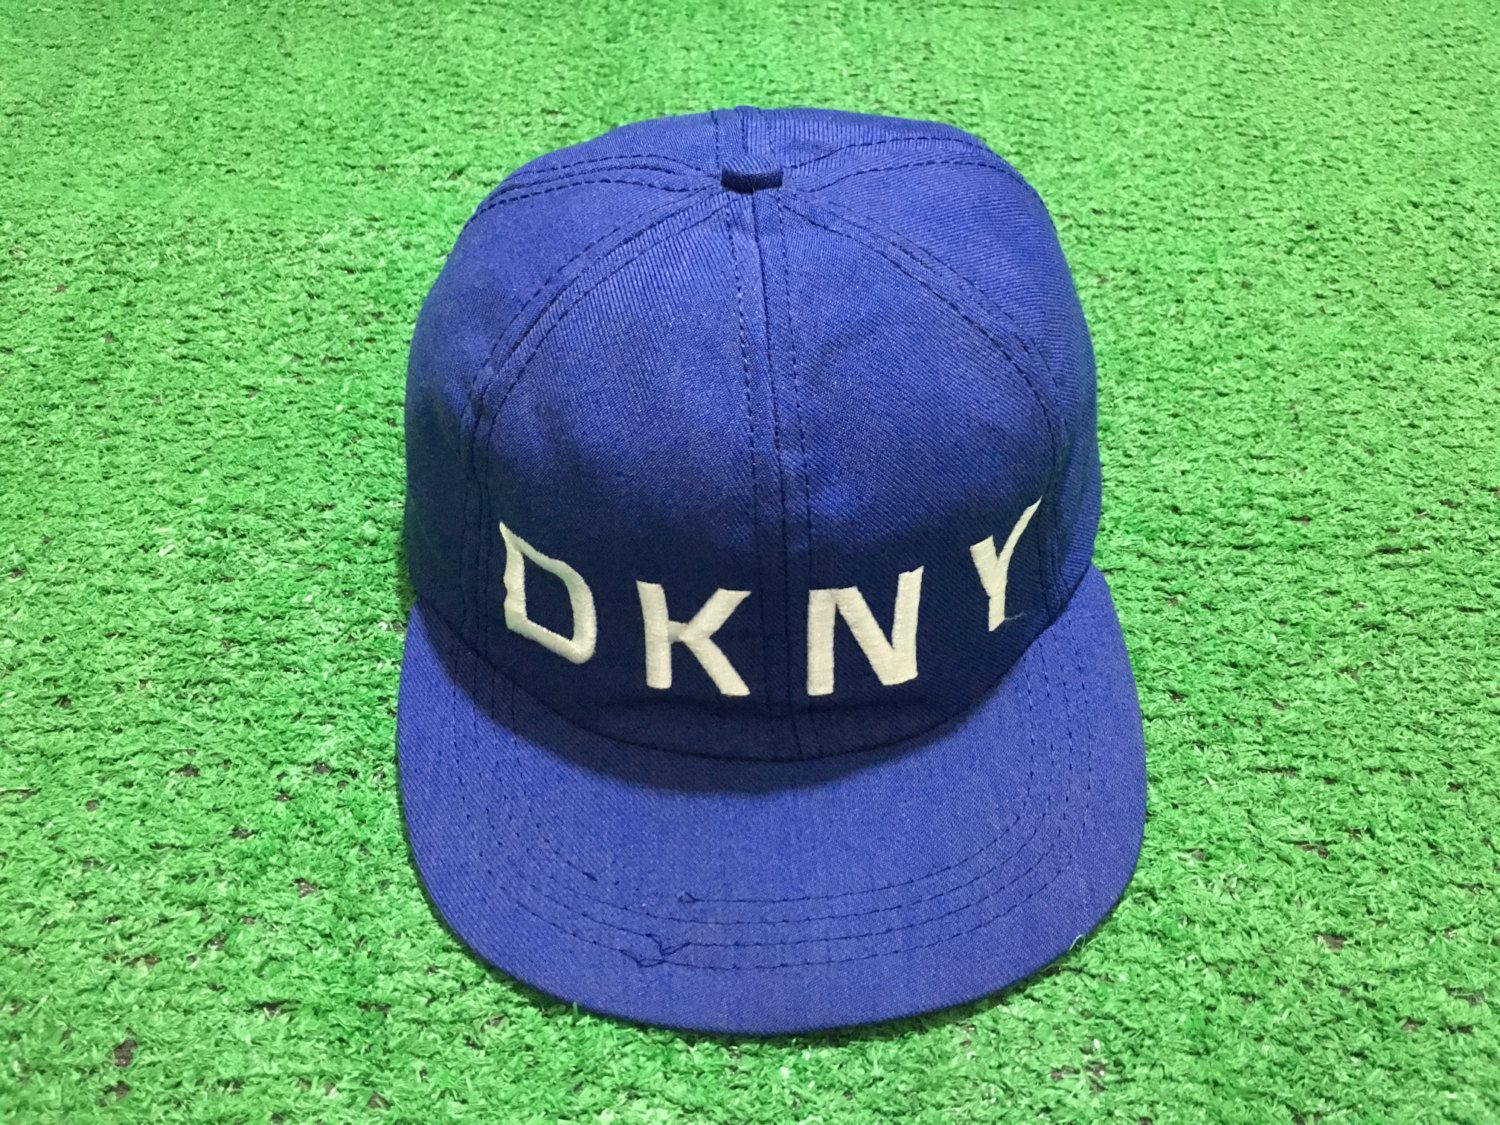 Vintage 90 s DKNY Cap Hat Made in Usa Flexible Cap Donna Karan New York NYC  hip hop Fashion by AllStyle99 on Etsy e3db74b52f3e